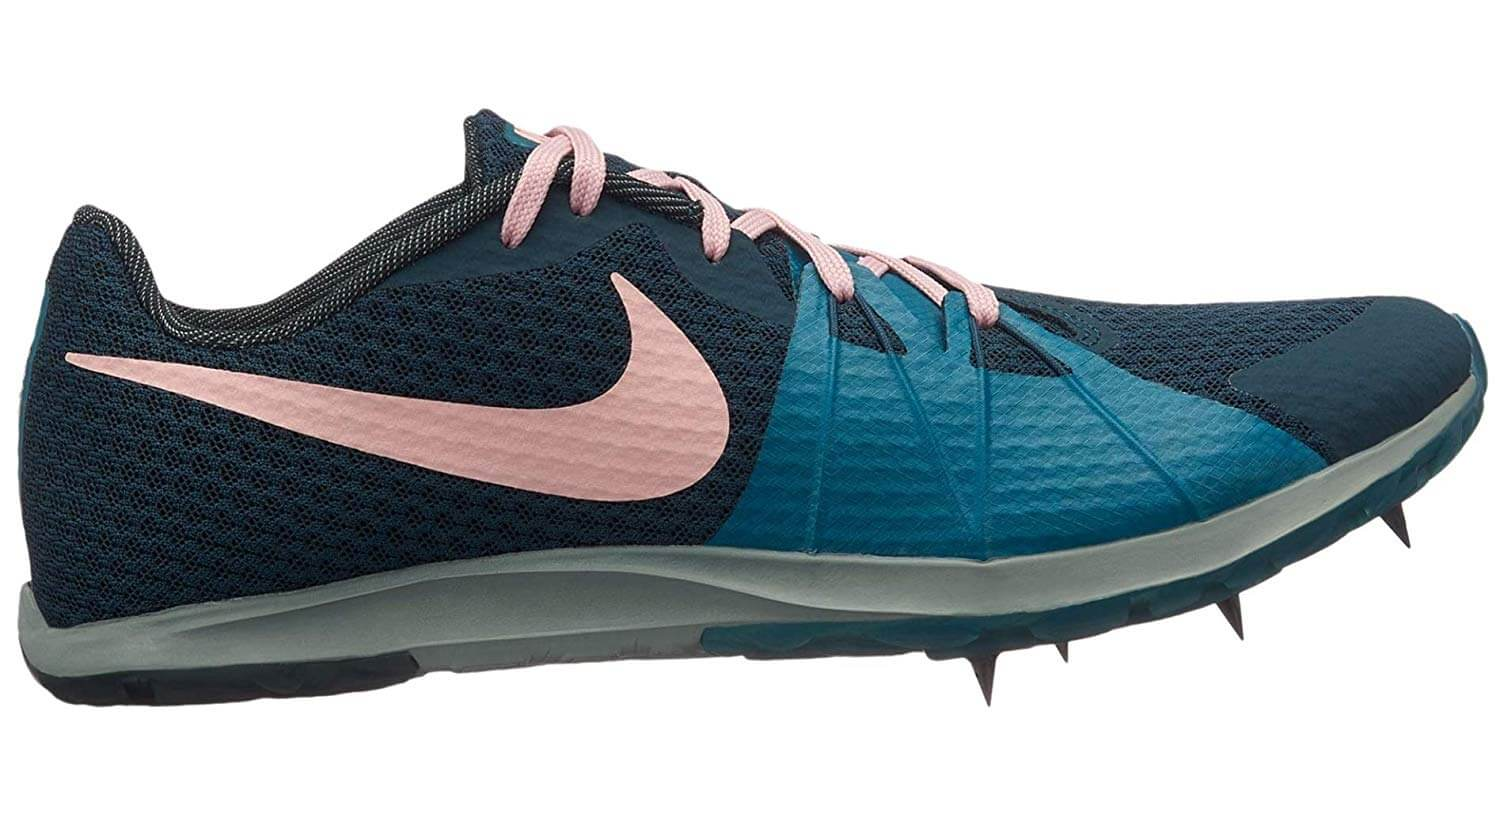 meet f8e9e 6ce19 Nike Zoom Rival XC Reviewed - To Buy or Not in May 2019